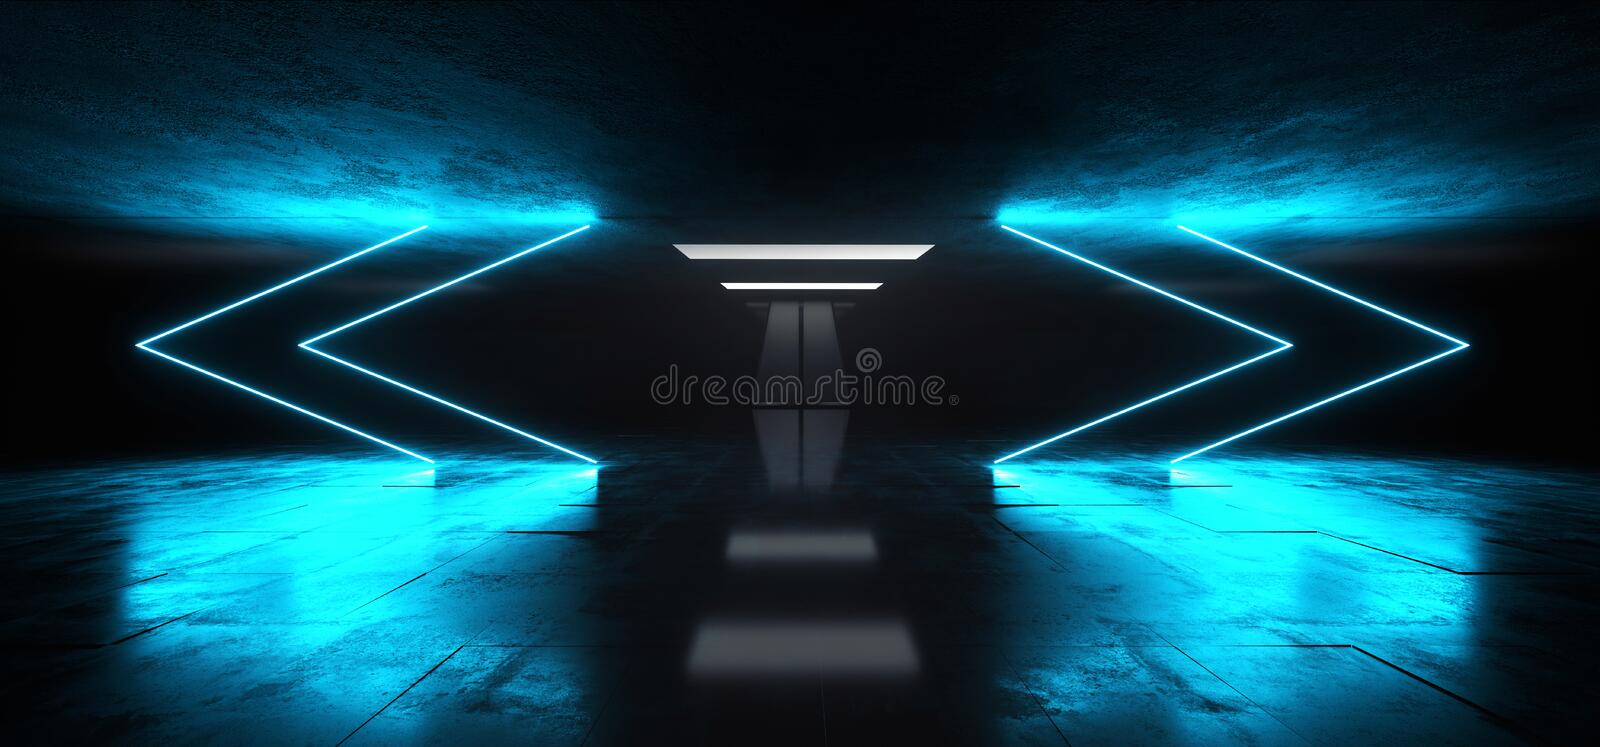 Arrows Neon Studio Construction Triangle Vibrant Sci Fi Tiled Stage Dance Lights Glowing Blue Reflecting On Grunge Concrete Big. White Glowing Lights Dark Hall vector illustration